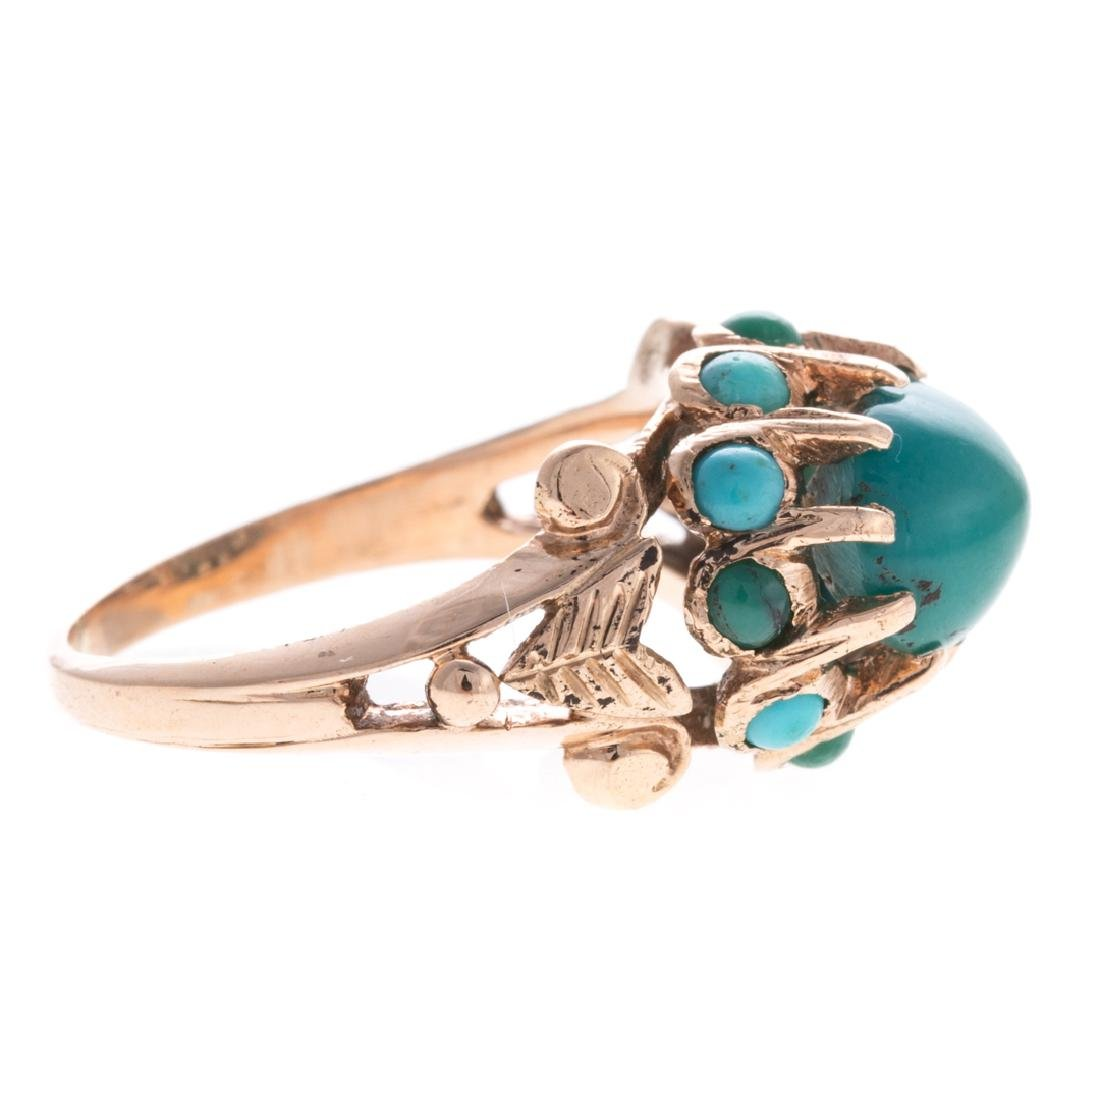 A Lady's Turquoise Ring in 14K Gold - 2